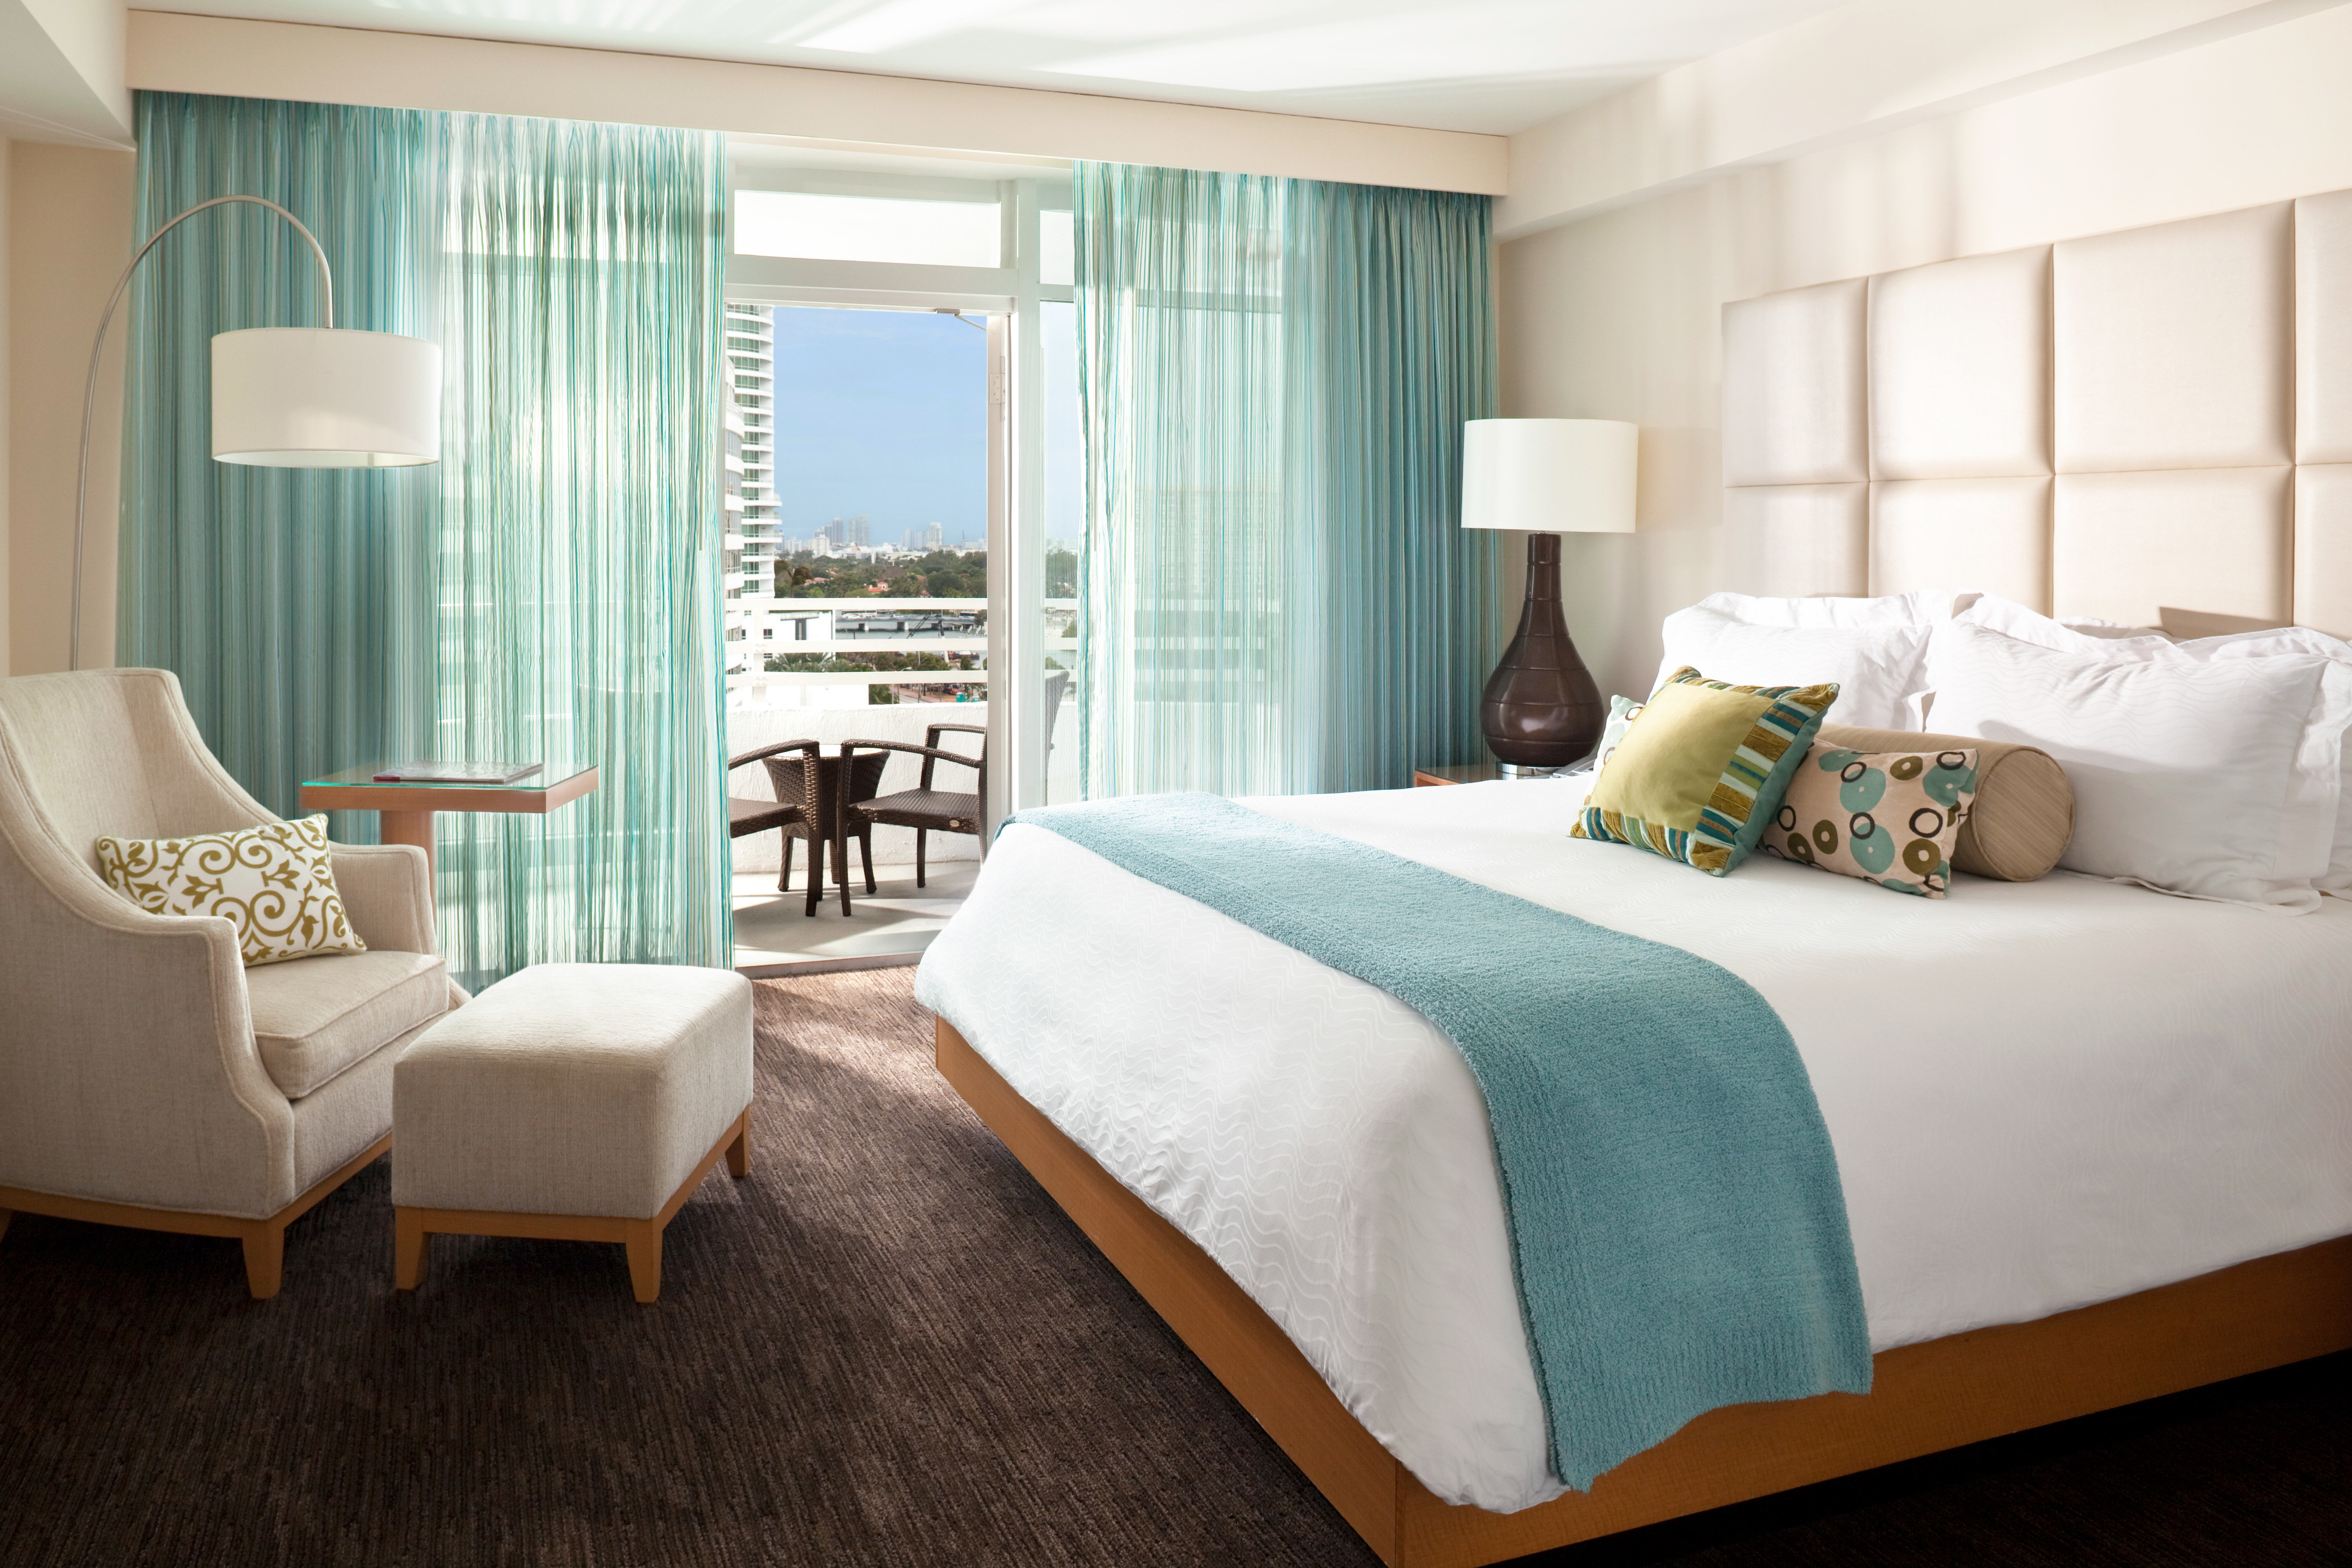 Balcony Bedroom City Classic Hotels Living Luxury Miami Miami Beach Resort Scenic views bed floor indoor wall hotel room window property ceiling Suite interior design living room home furniture bed sheet estate real estate nice cottage textile pillow lamp decorated